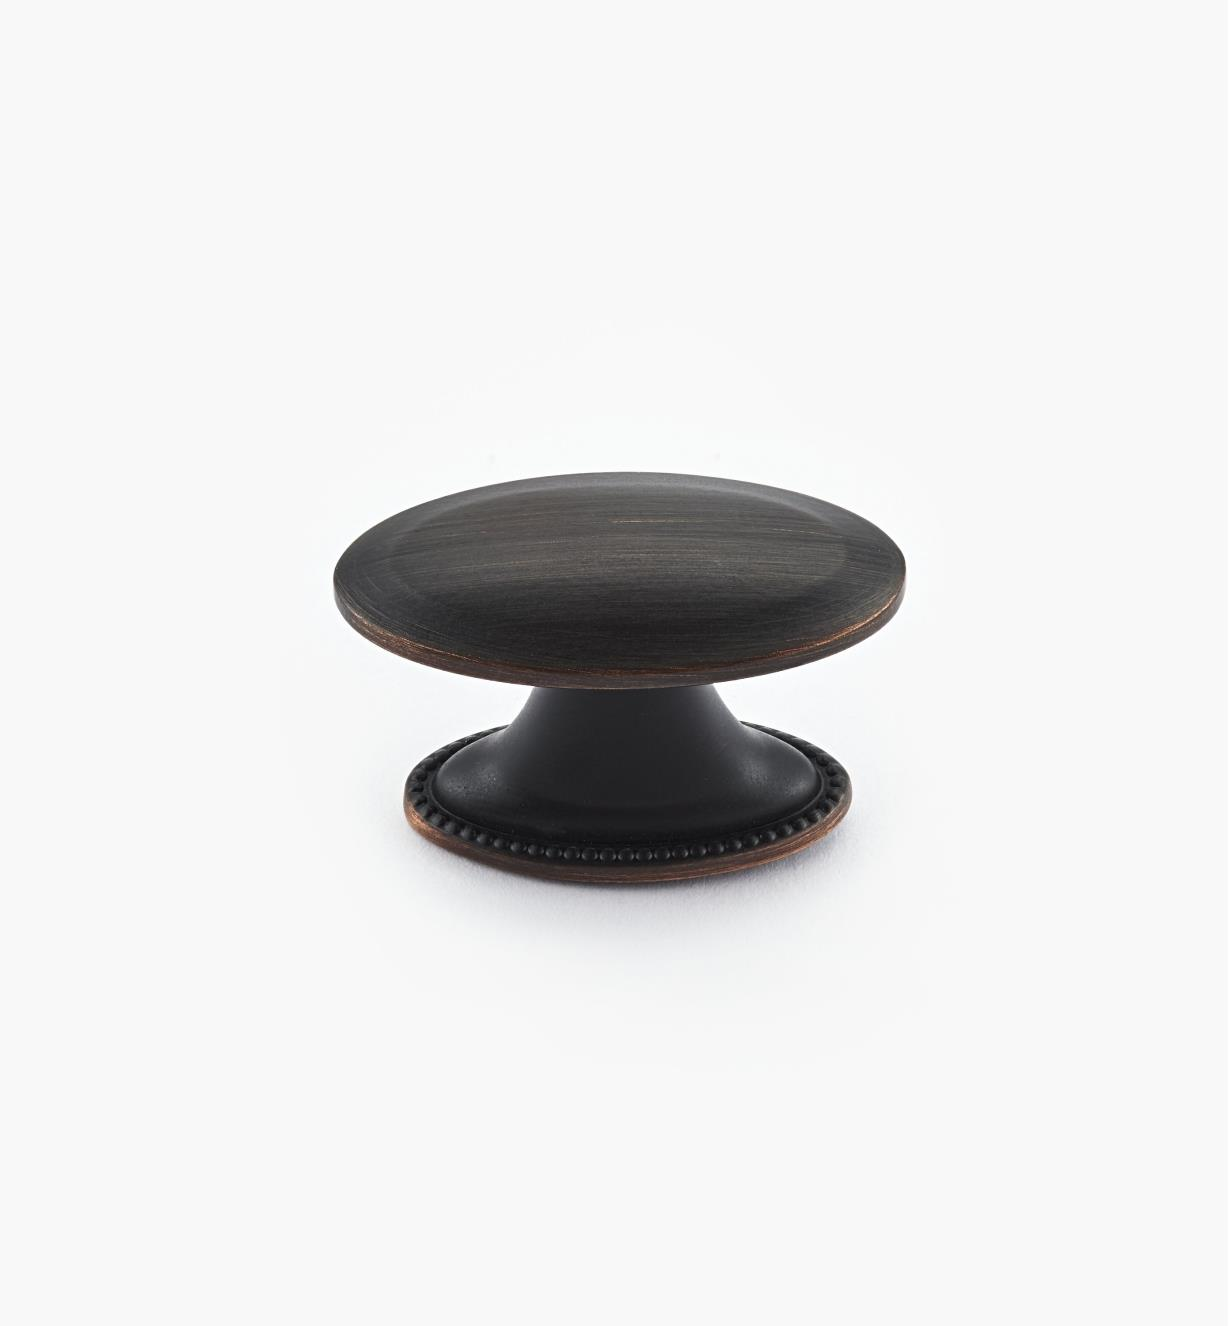 "02A1571 - Atherly Hardware –Oil-Rubbed Bronze Oval Knob, 1 1/2"" x 3/4"""